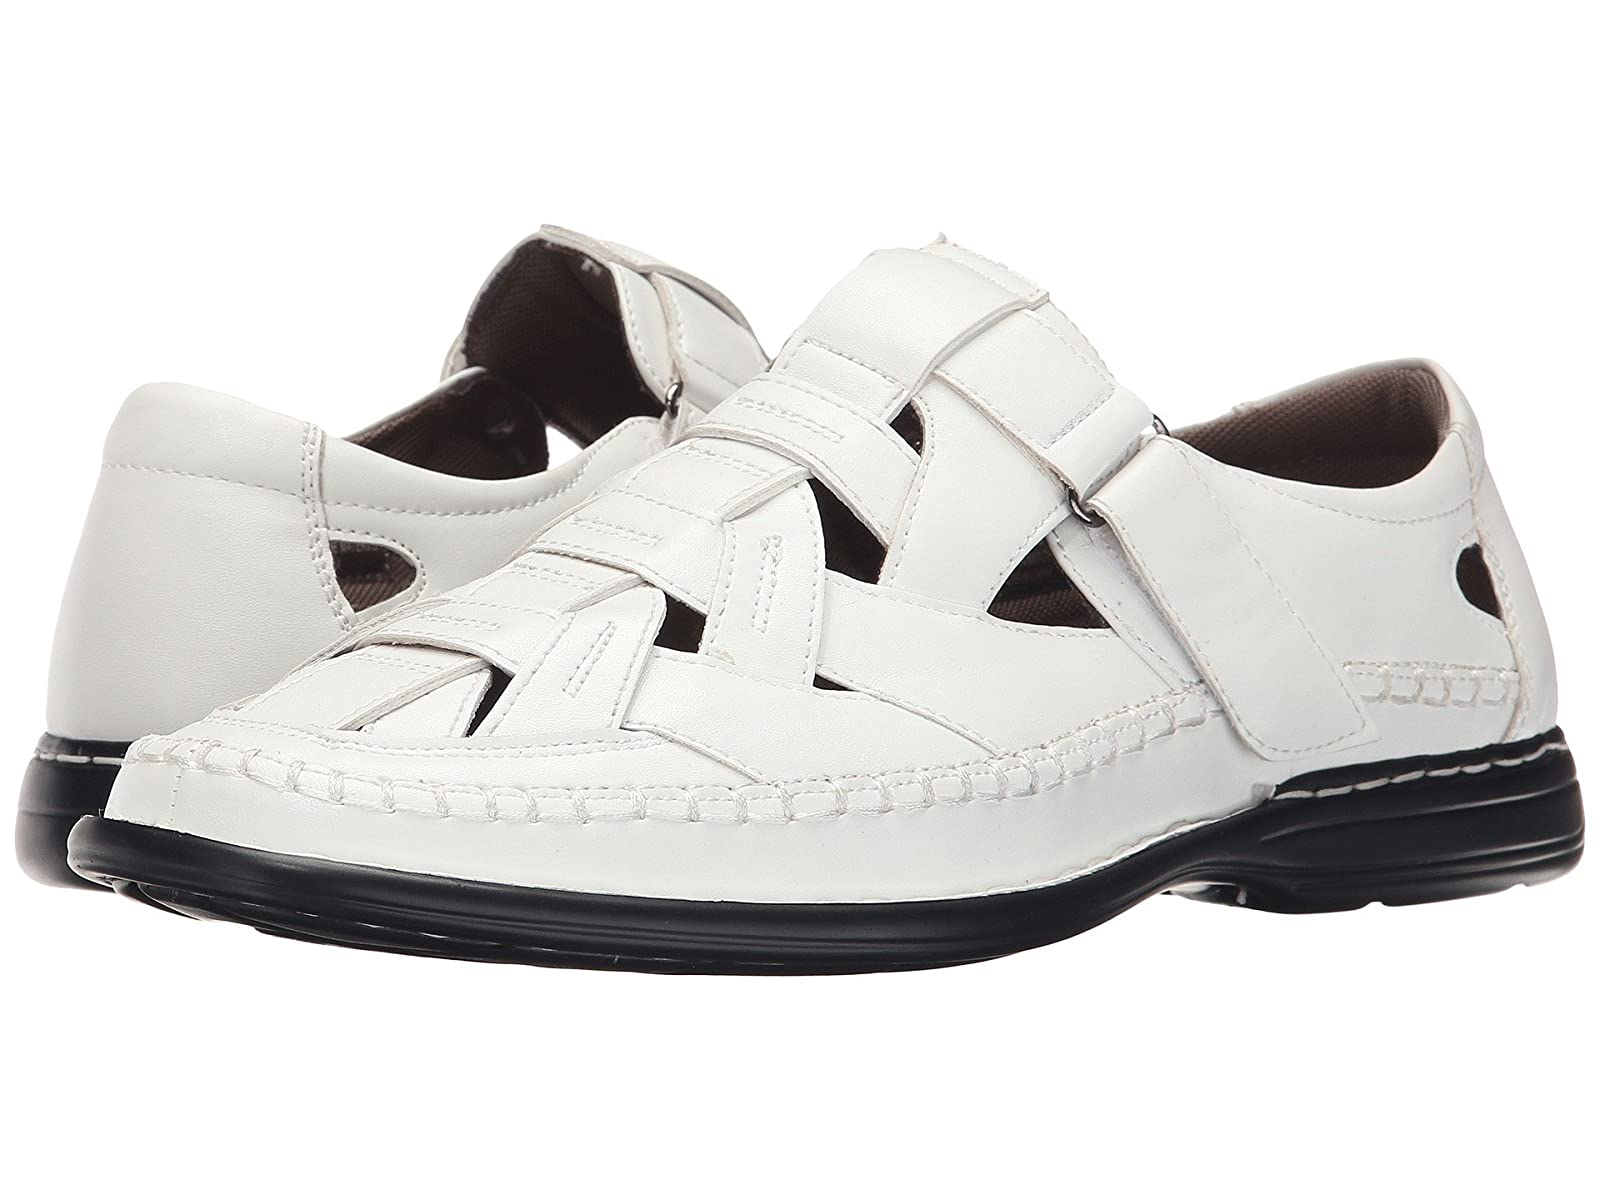 Stacy Adams BiscayneAtmospheric grades have affordable shoes